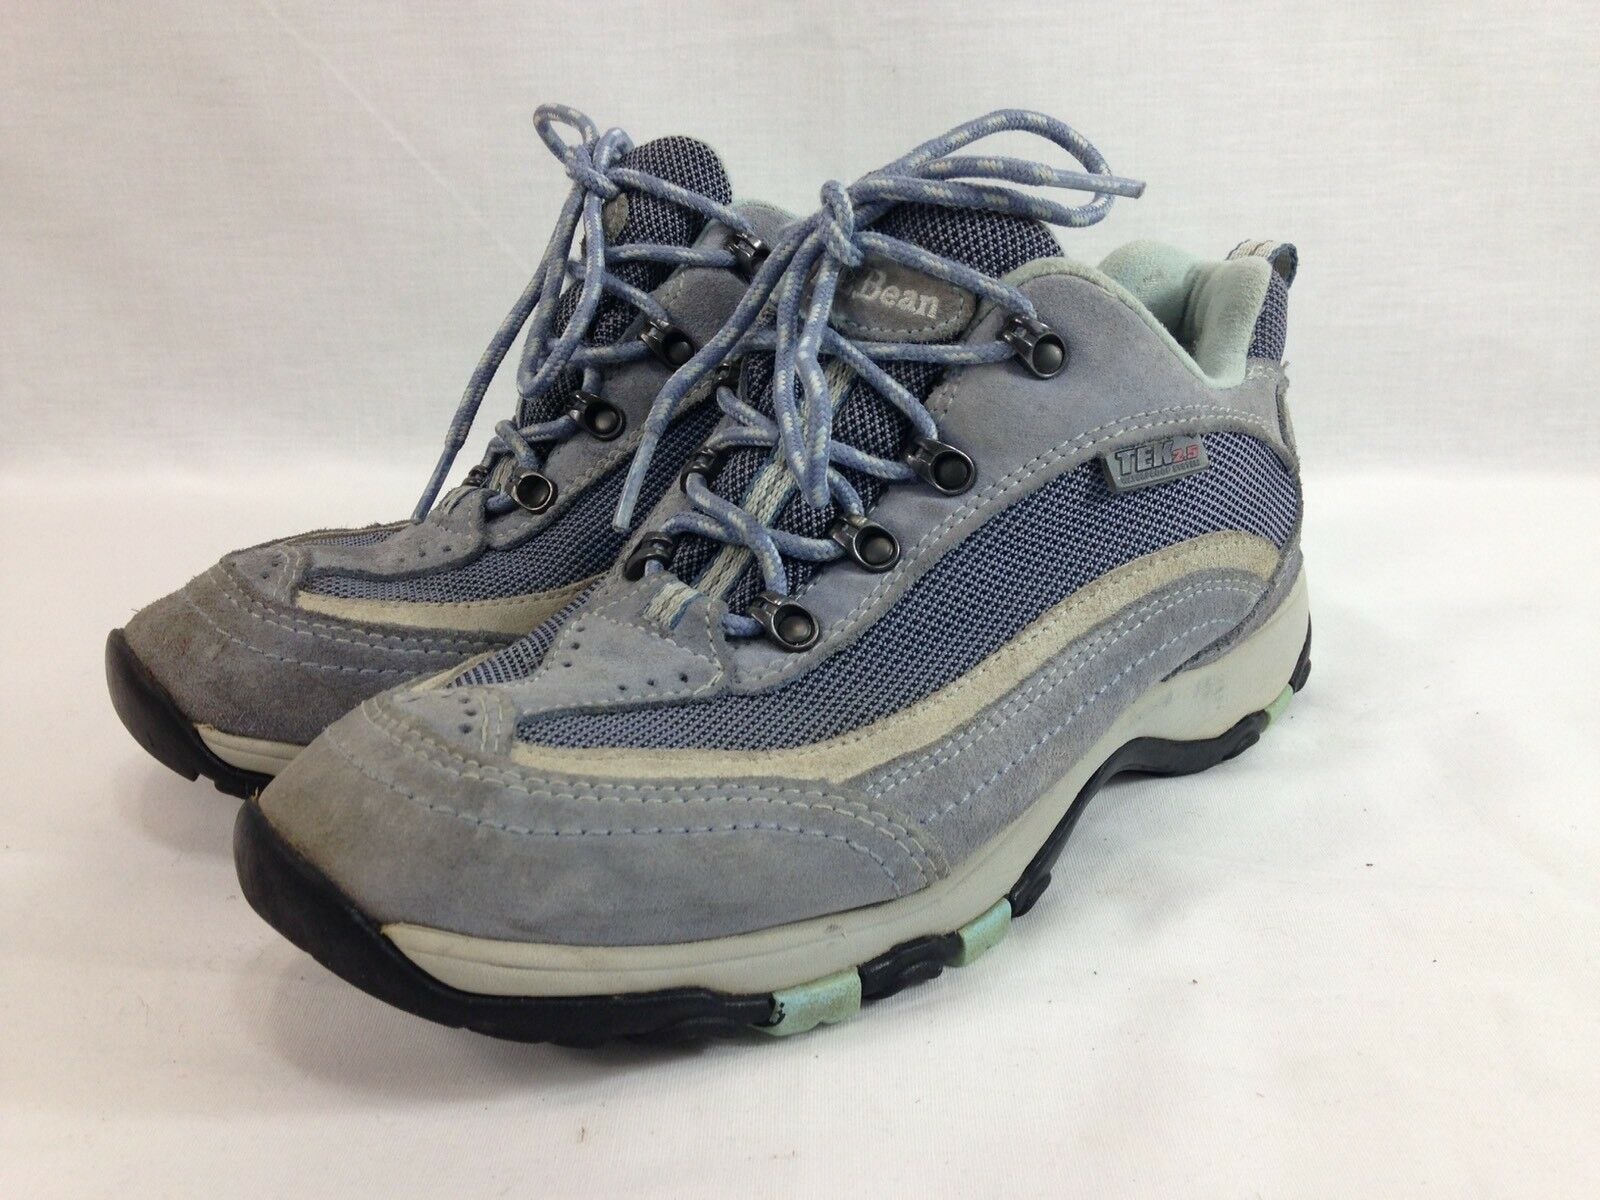 LL Bean TEK 2.5 Hiking Sneakers Boots Trail shoes Womens 7.5 M bluee Primaloft